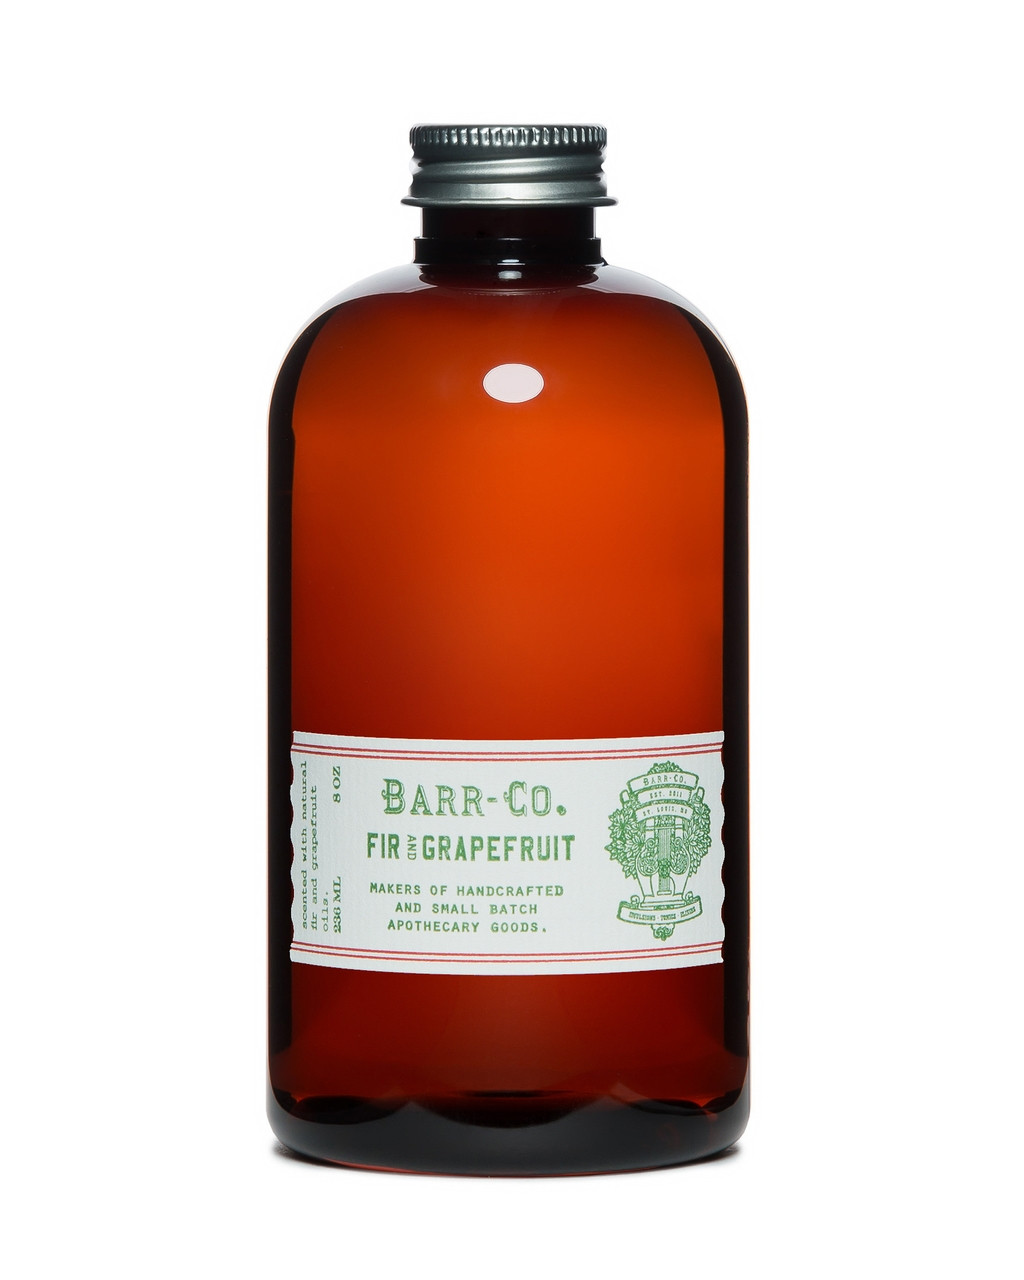 Barr-Co. Fir & Grapefruit Diffuser Refill (8oz)